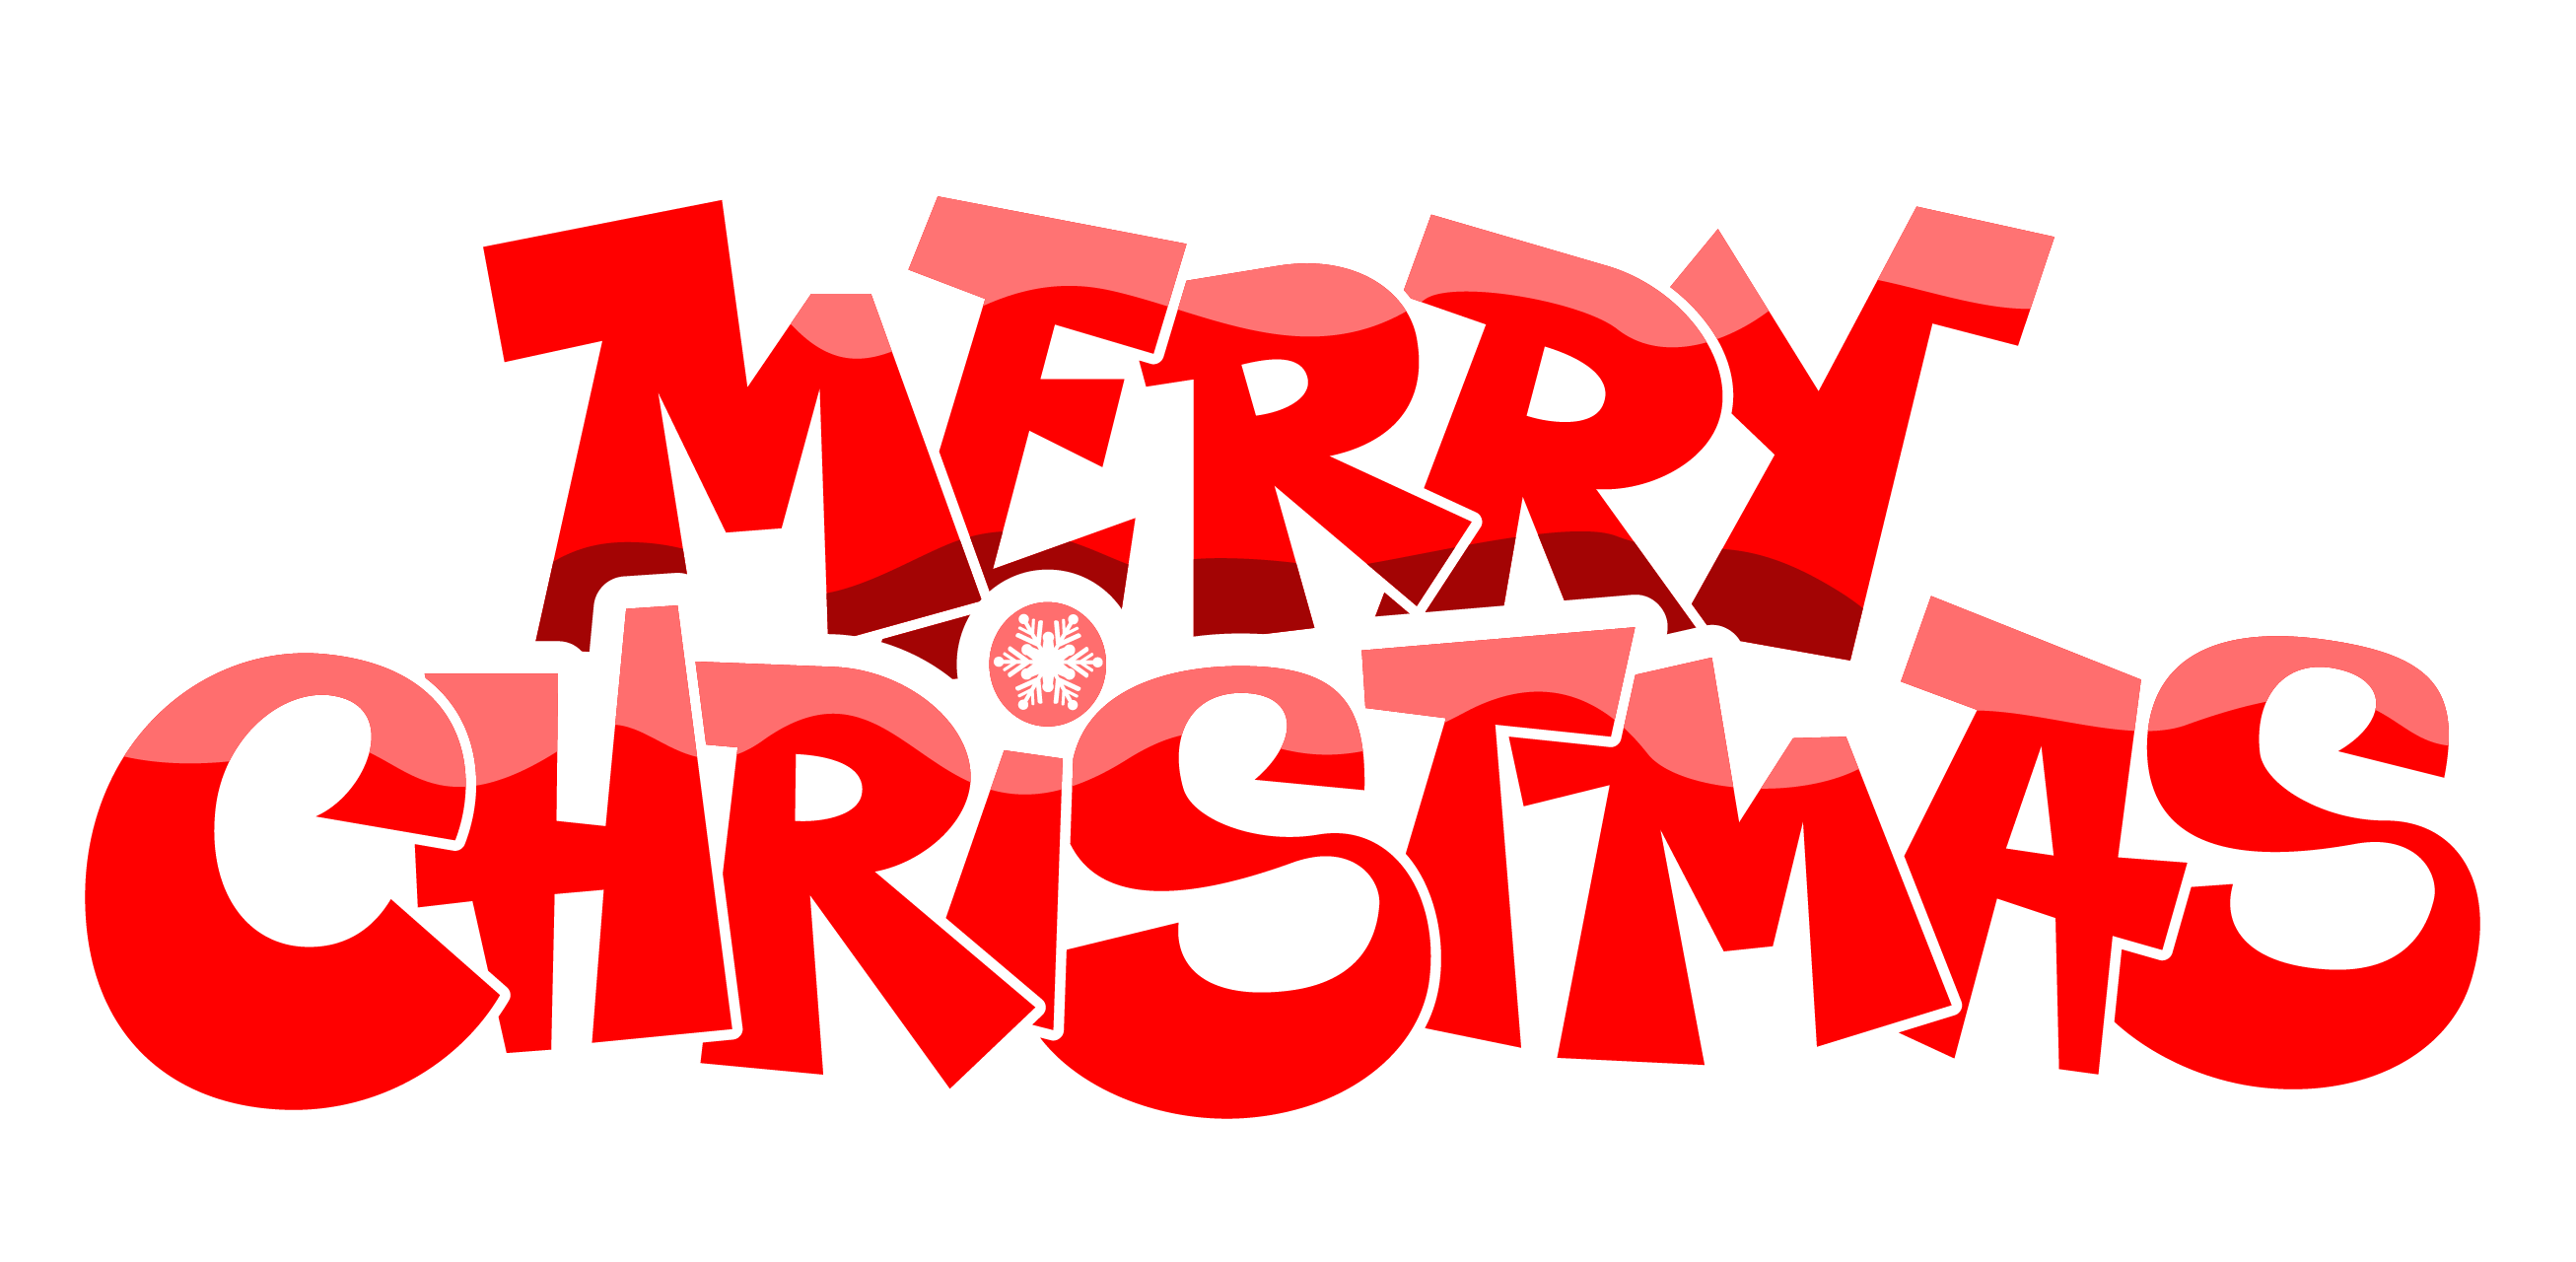 Merry Christmas Text Transparent PNG Image